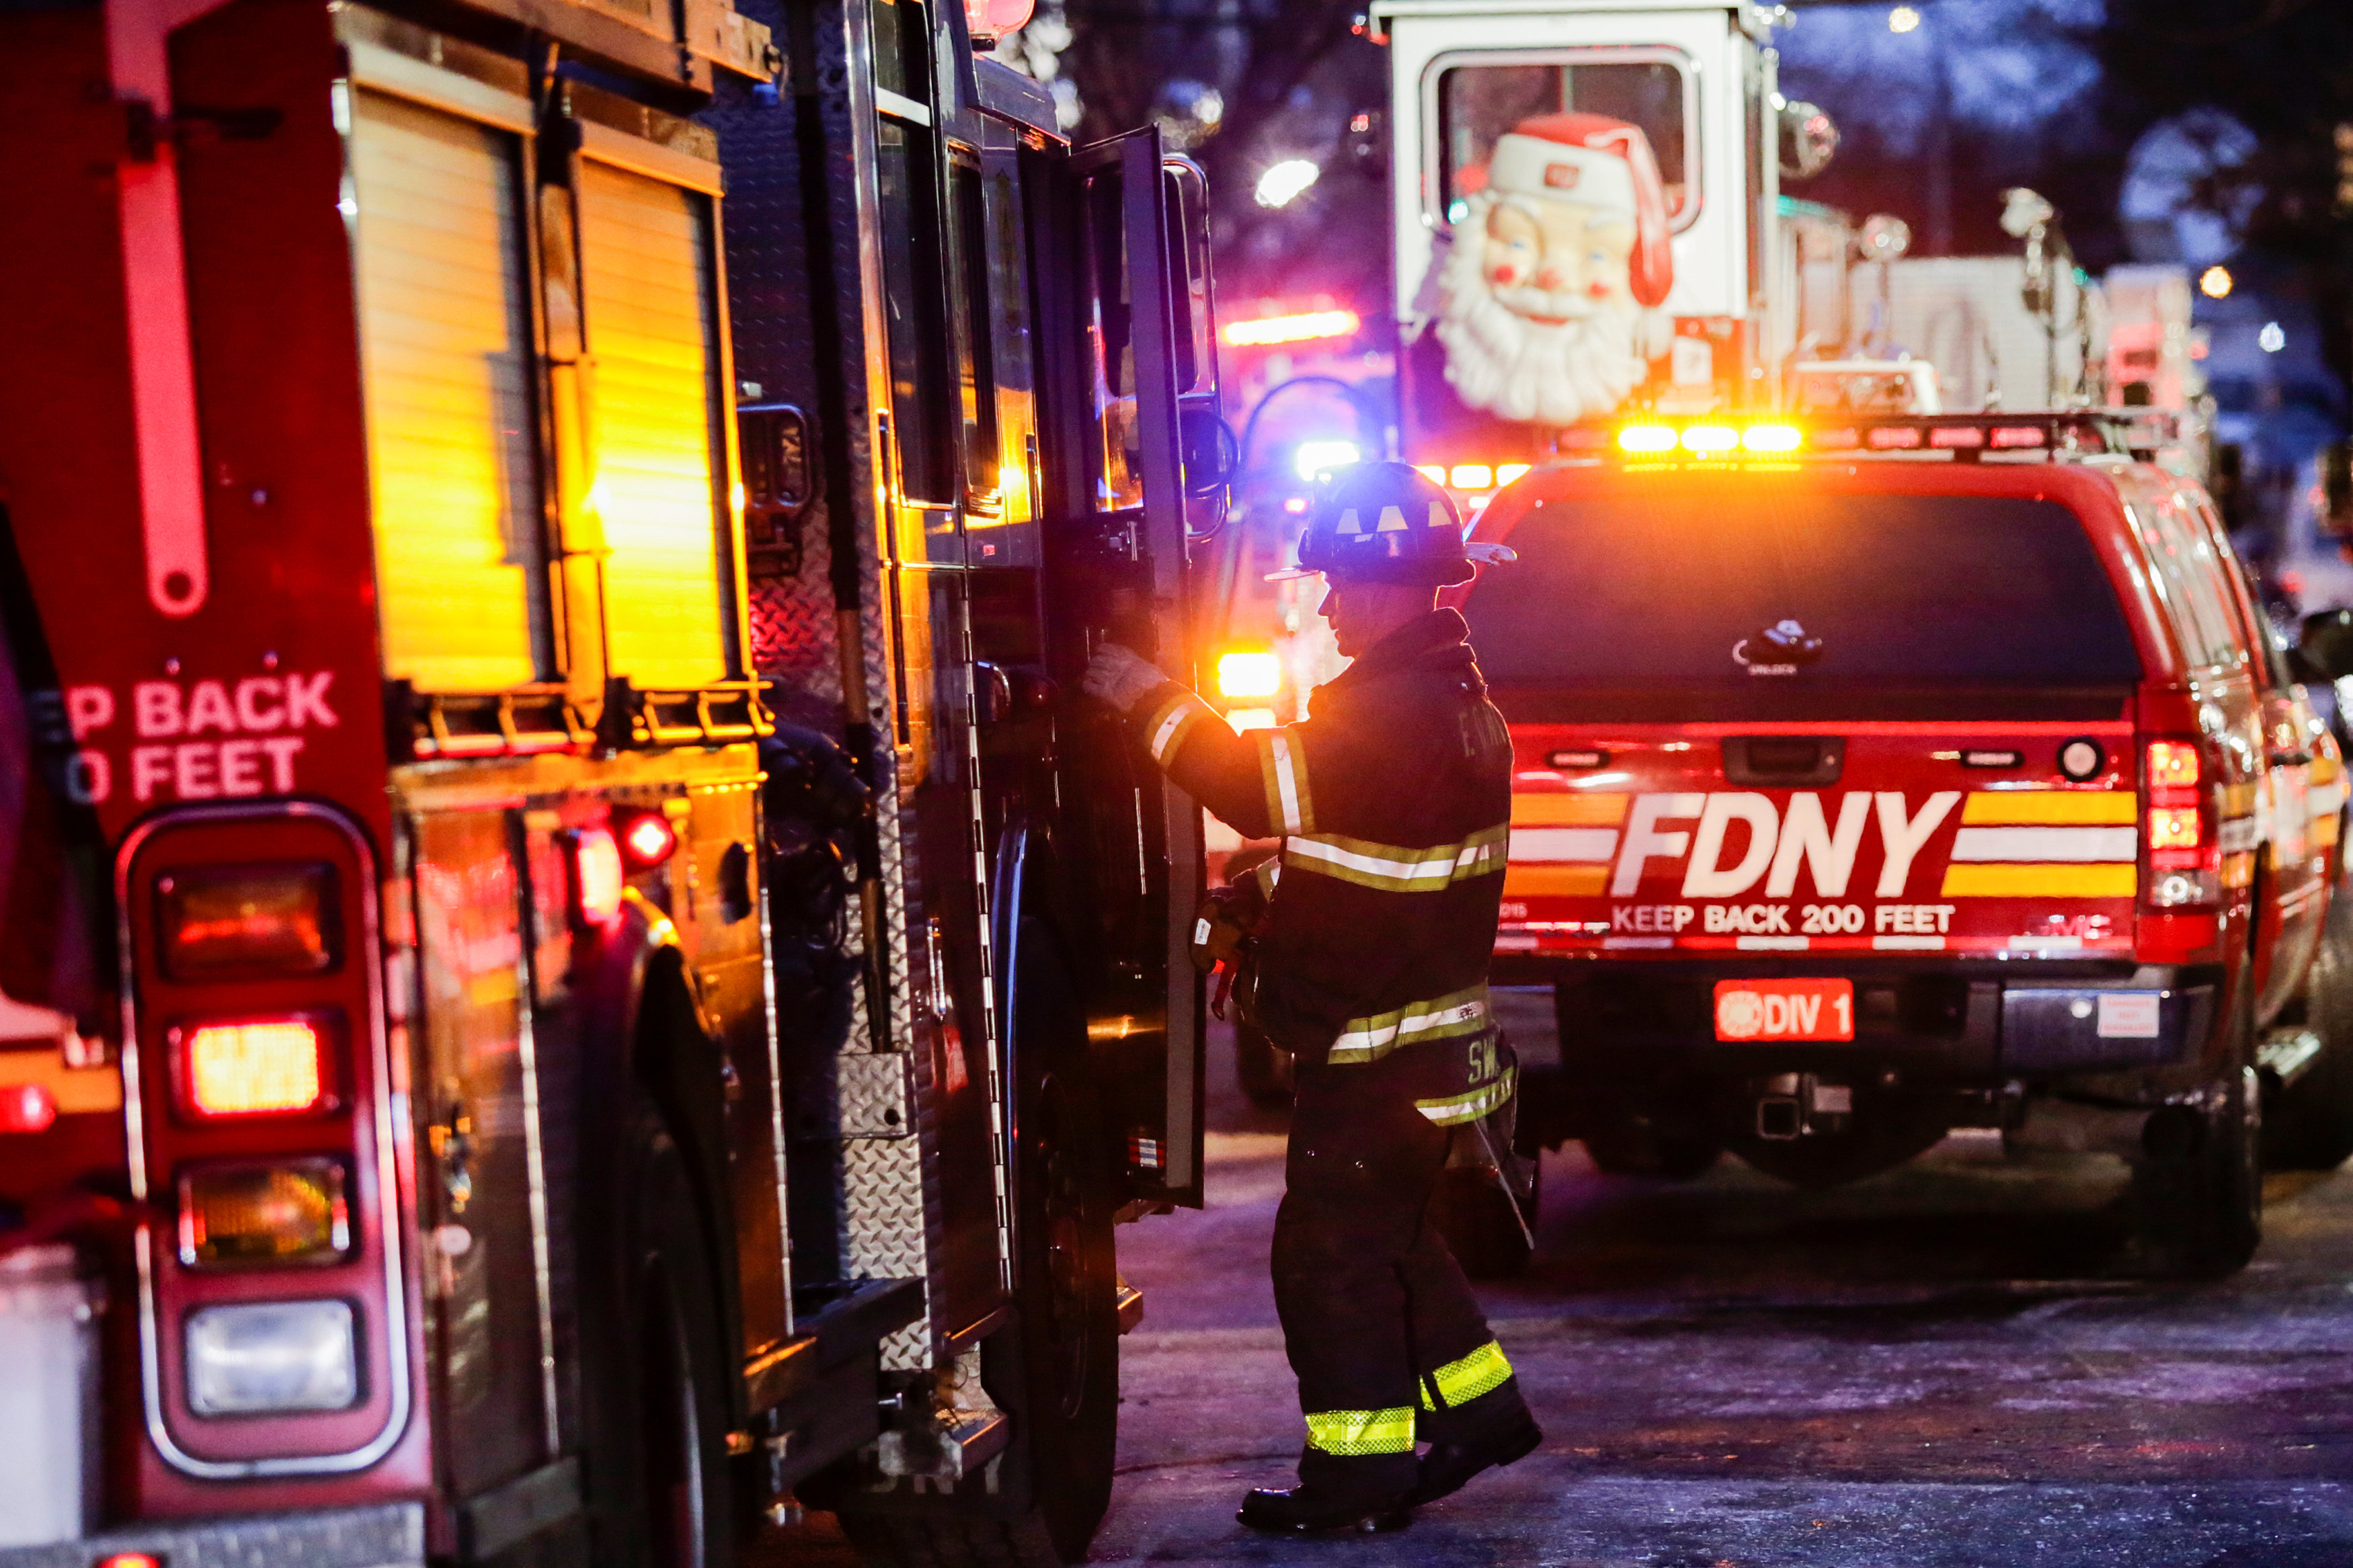 Soldier Home For The Holidays Died While Saving Lives in Bronx Fire